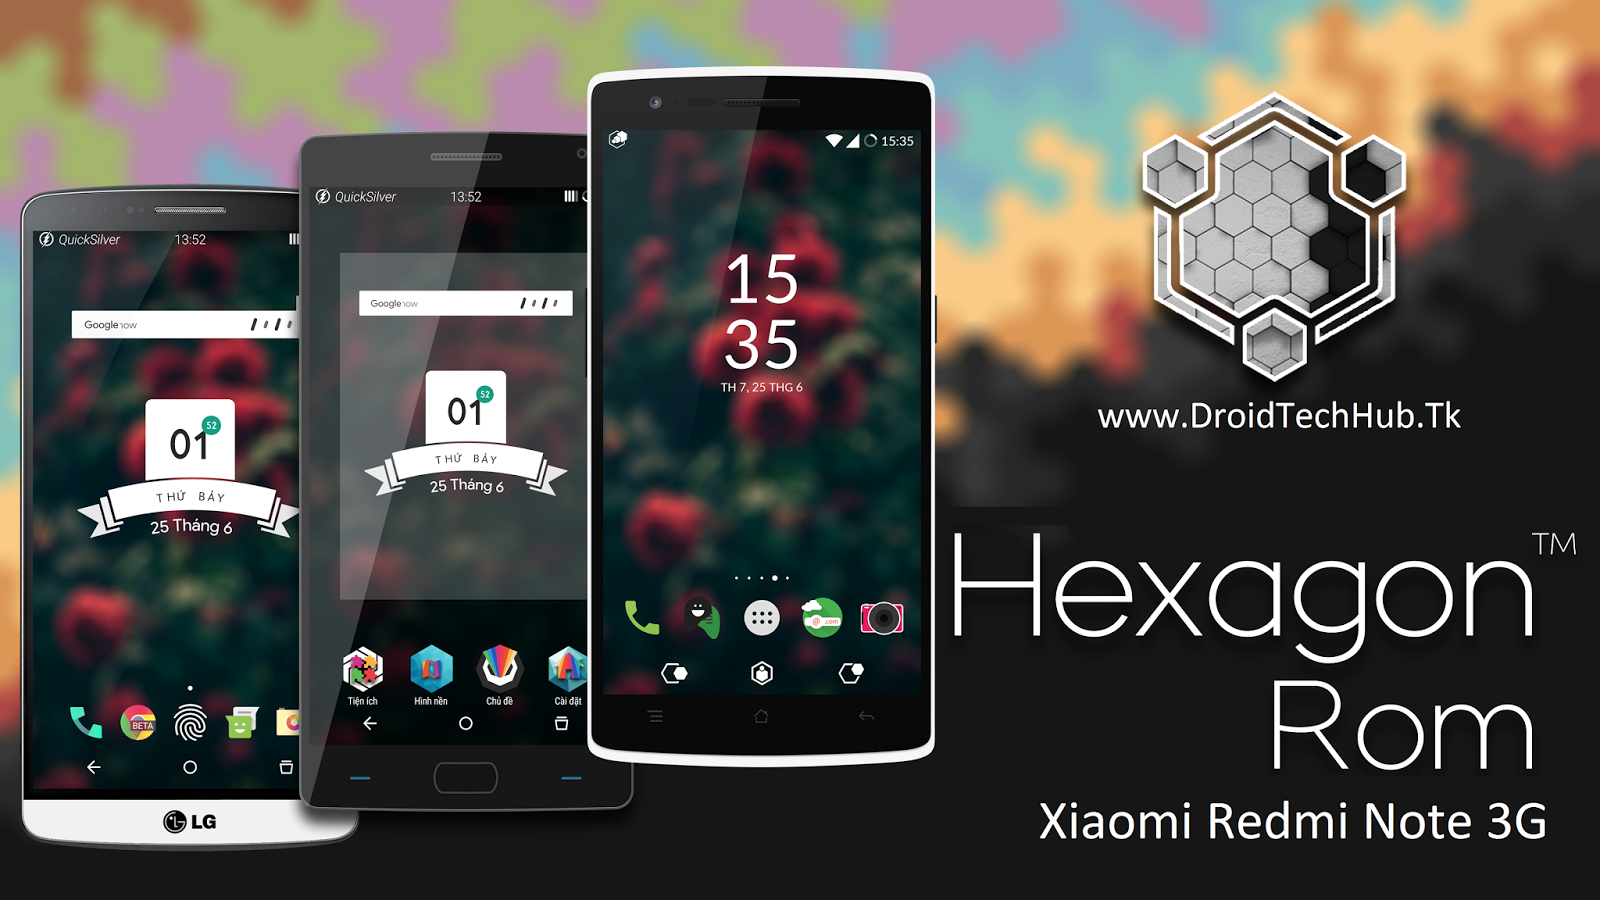 601 Hexagonos Rom For Xiaomi Redmi Note 3g Mt6592 Droid Tech Hello Friends I Am Back With Another Custom This Time Is Something Unique Our Lovely